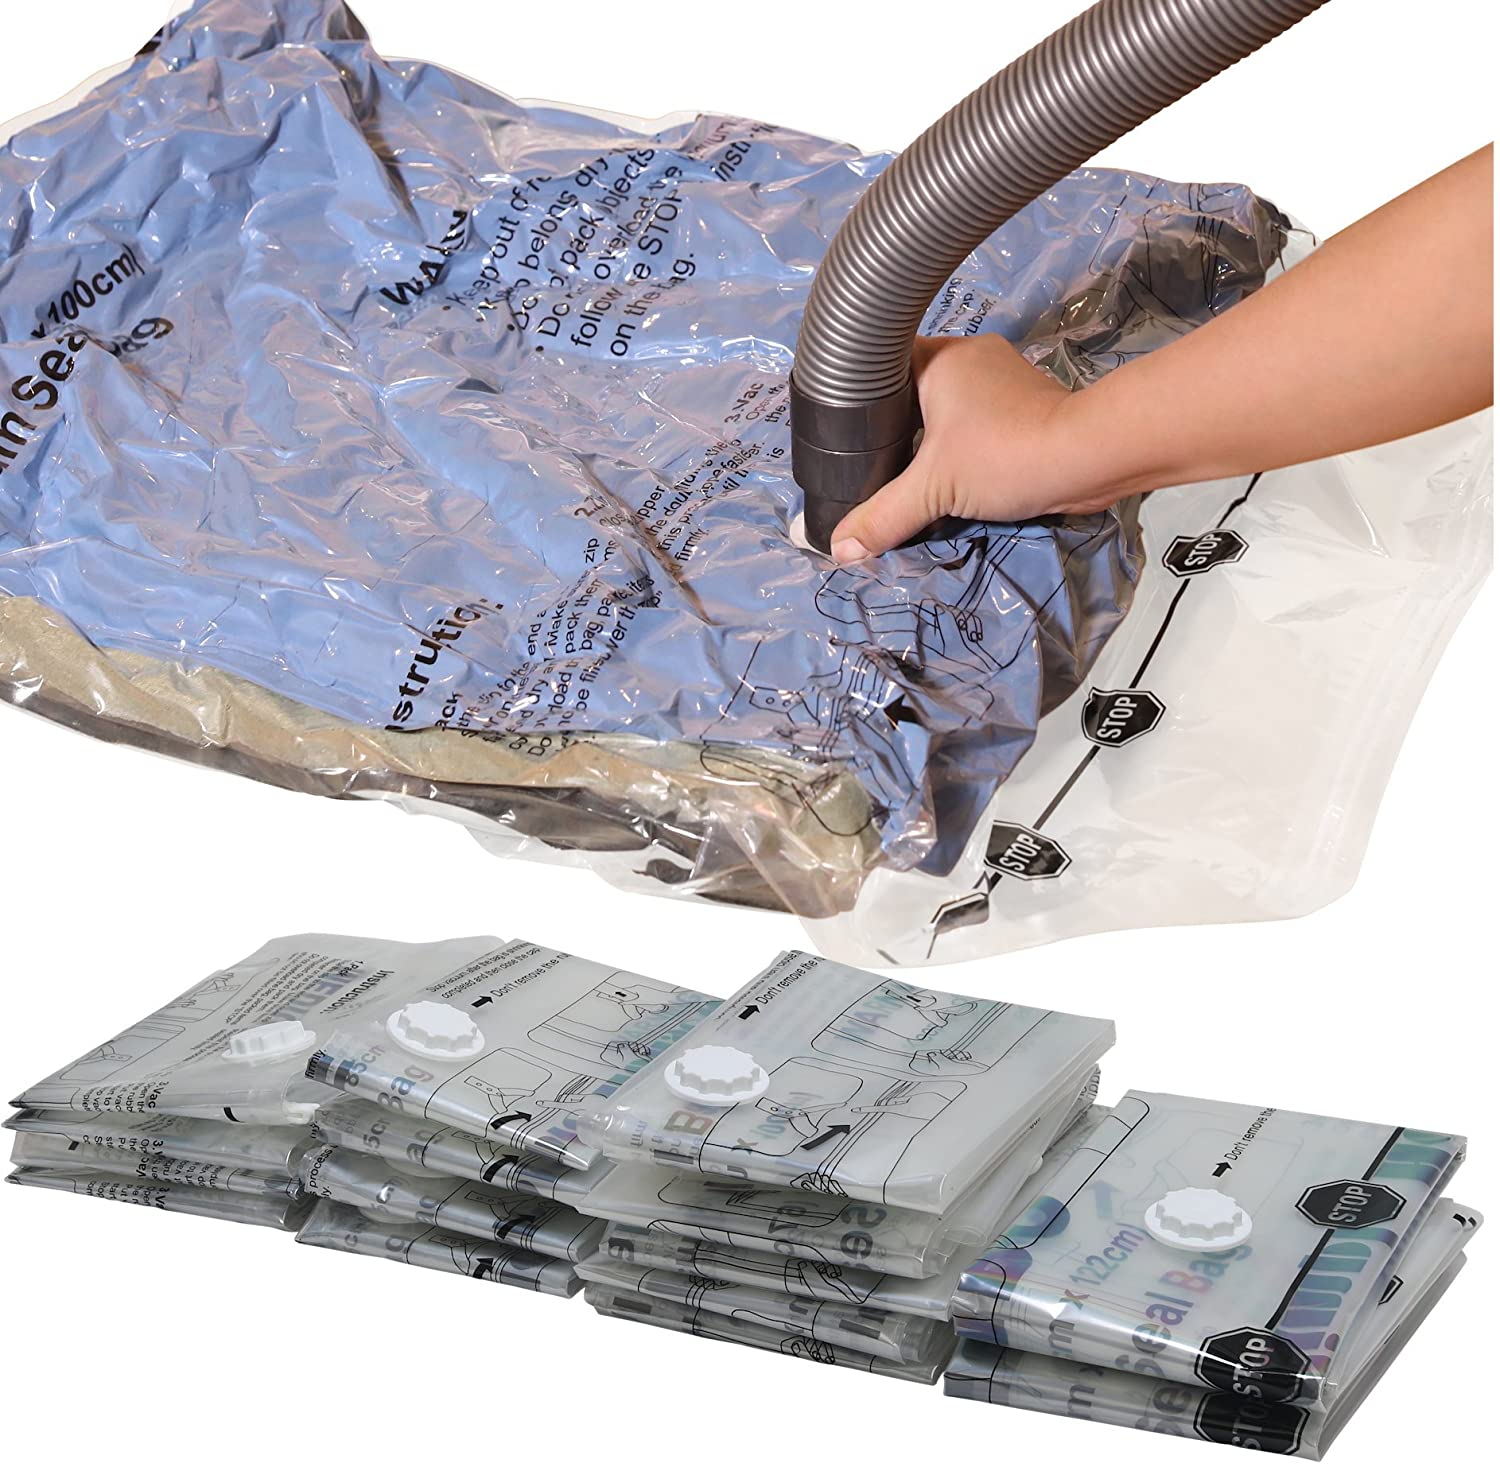 Simple Houseware 15 Vacuum Storage Bags to Space Saver for Bedding, Pillows, Towel, Blanket, Clothes Bags (2 x Jumbo, 5 x Extra Large, 4 x Large, 4 x Medium)